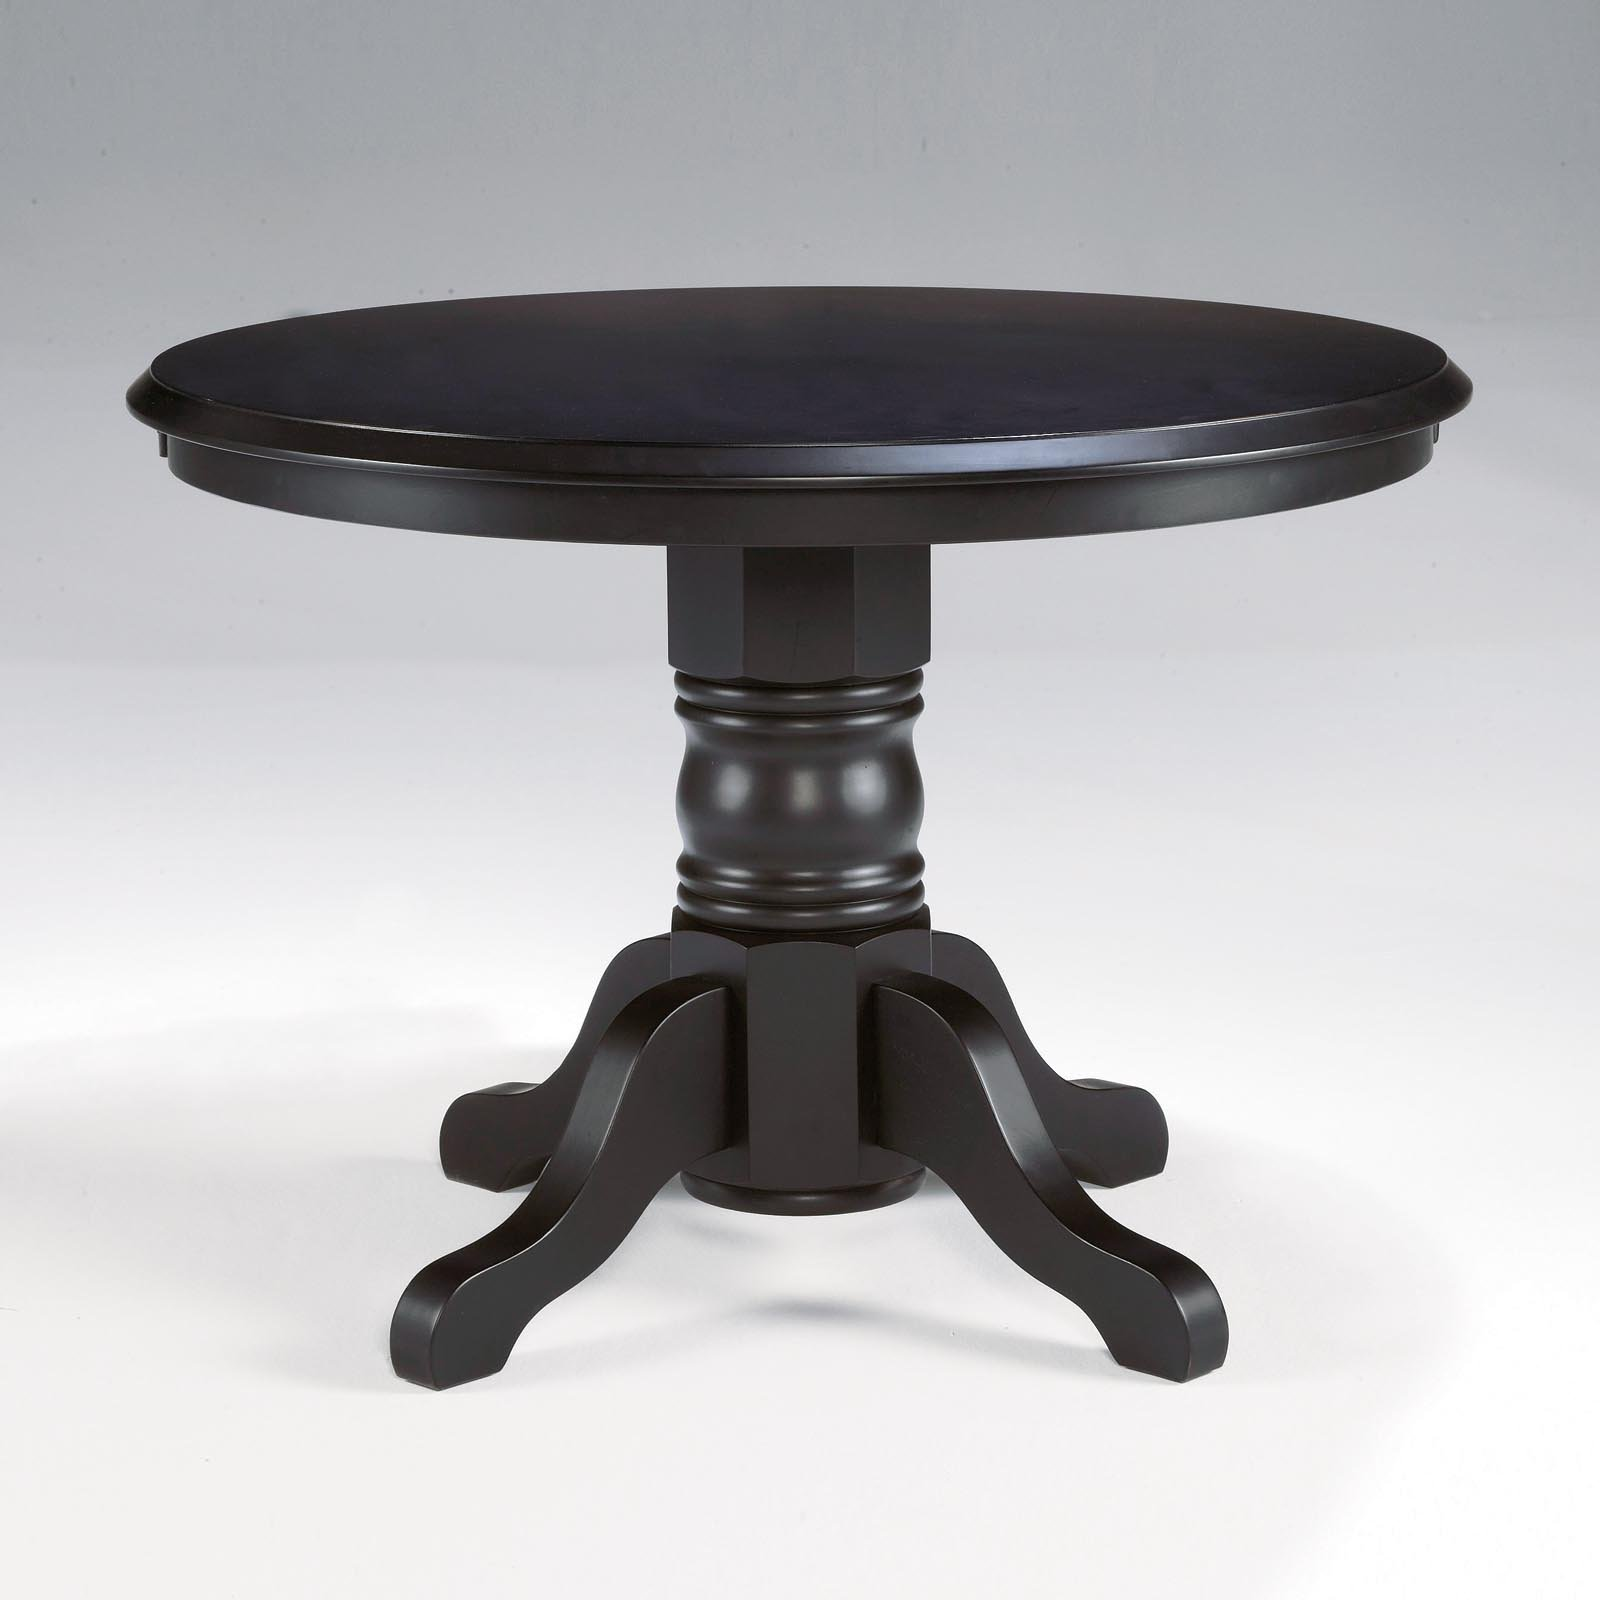 Merveilleux Home Styles Round Pedestal Dining Table, Black